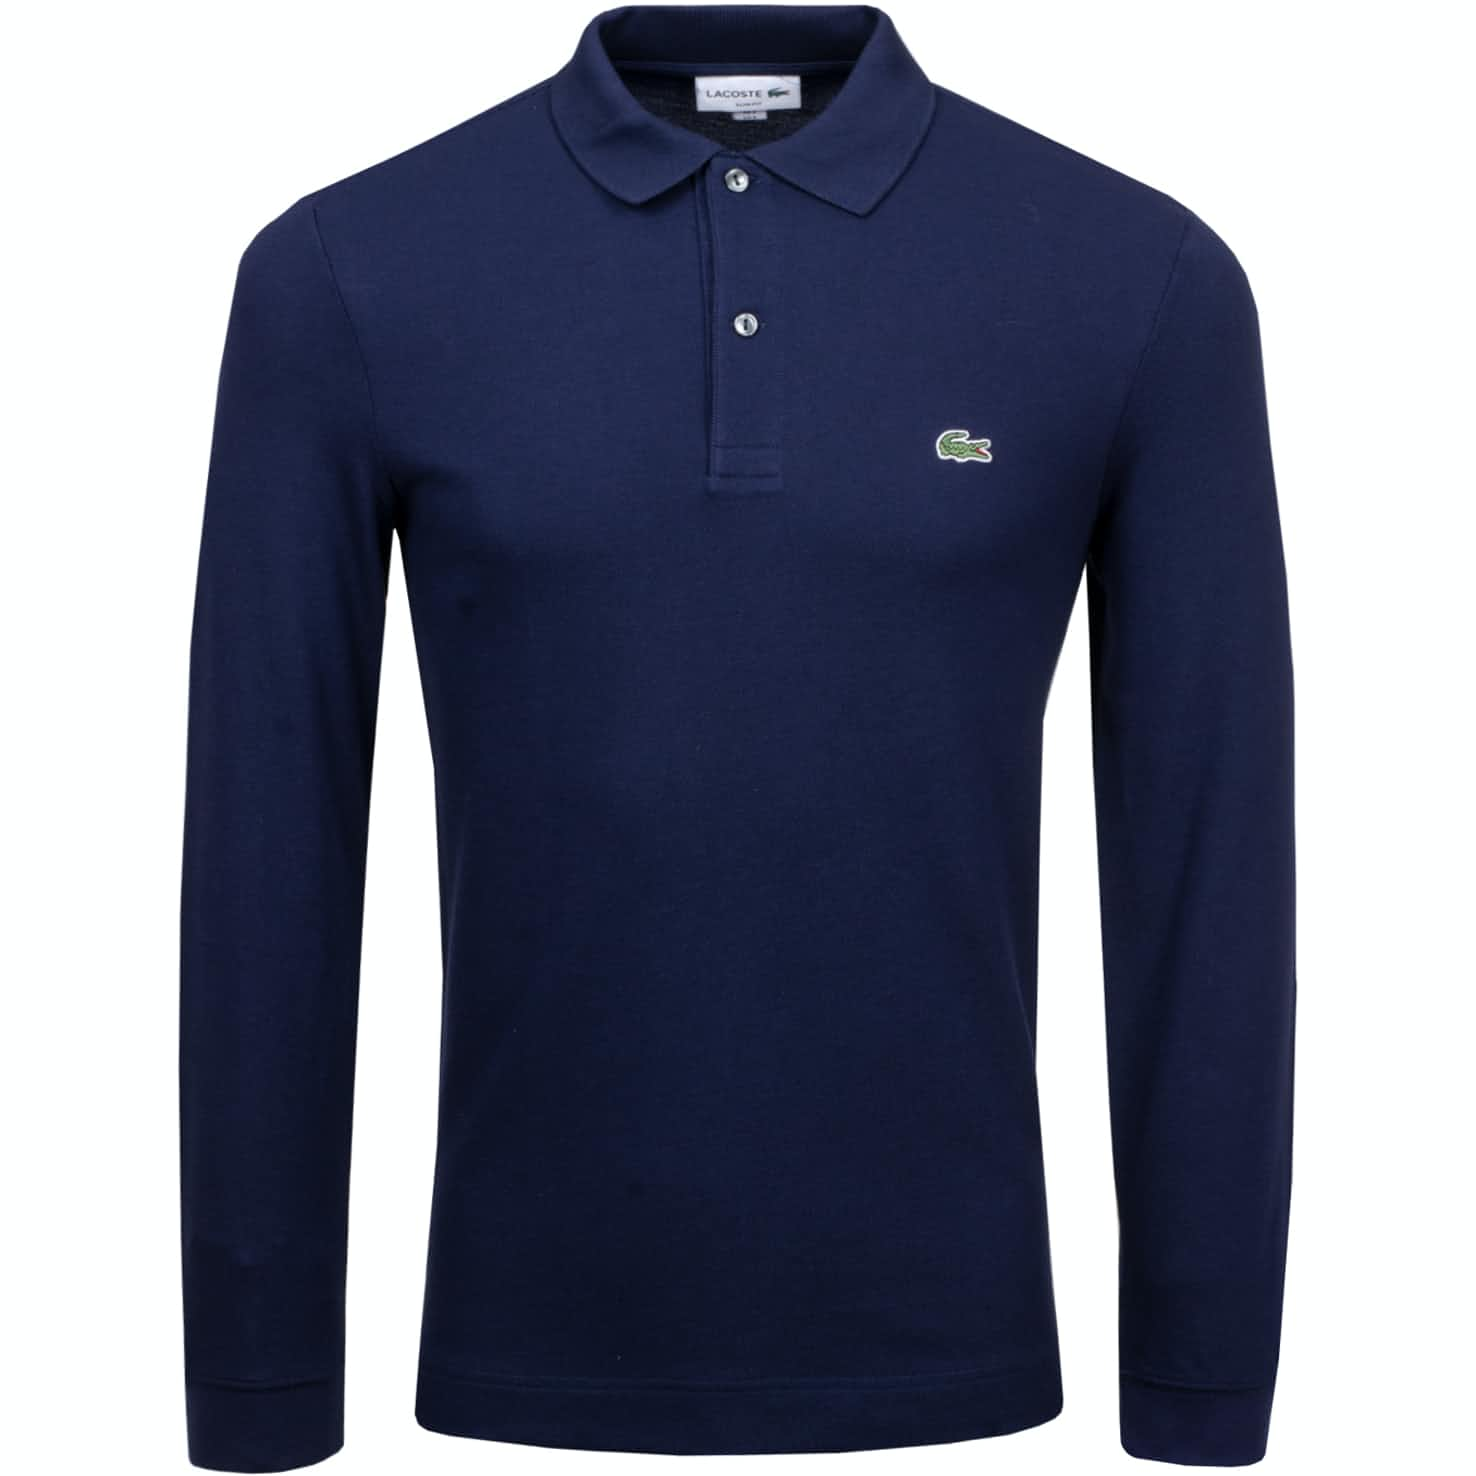 LS Slim Fit Pique Polo Navy - 2019